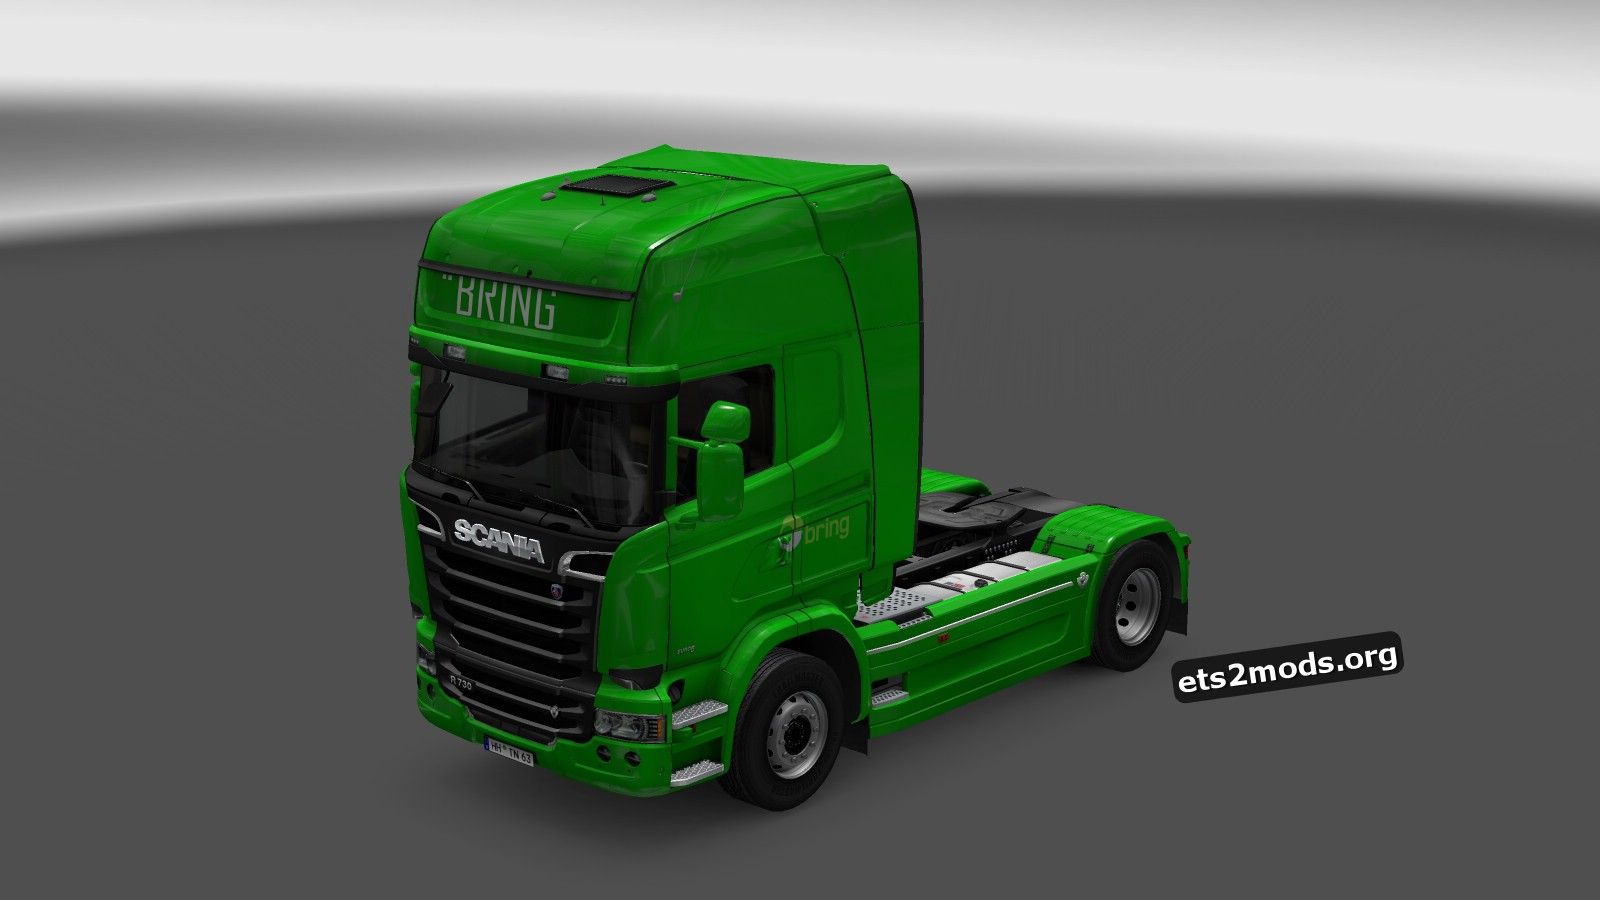 Bring Skin for Scania Streamline